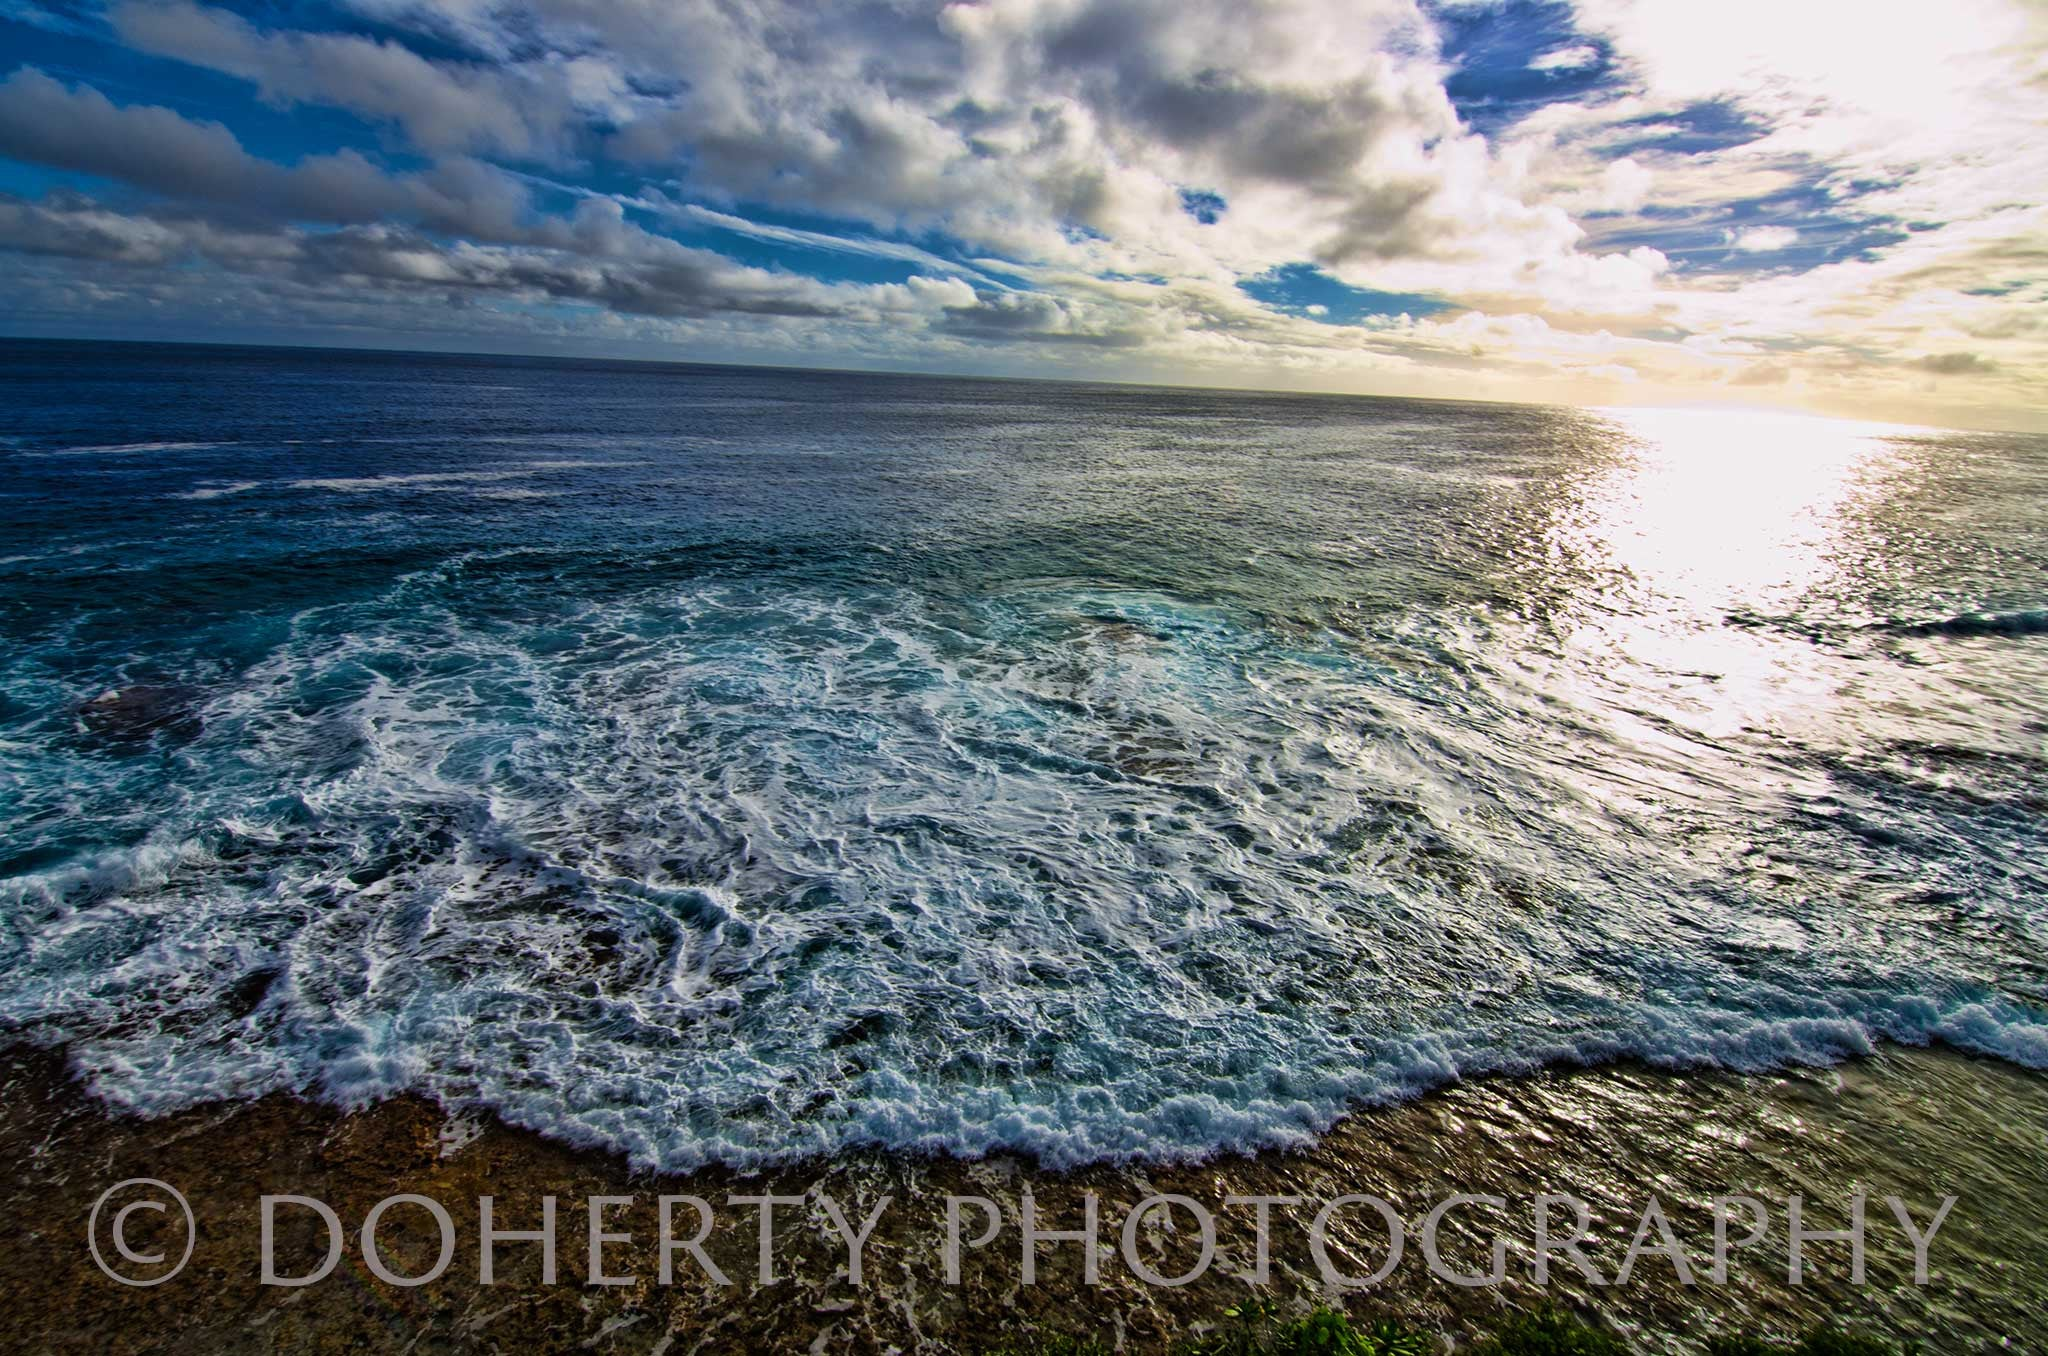 Where the Ocean Meets the Sky - Doherty Photography